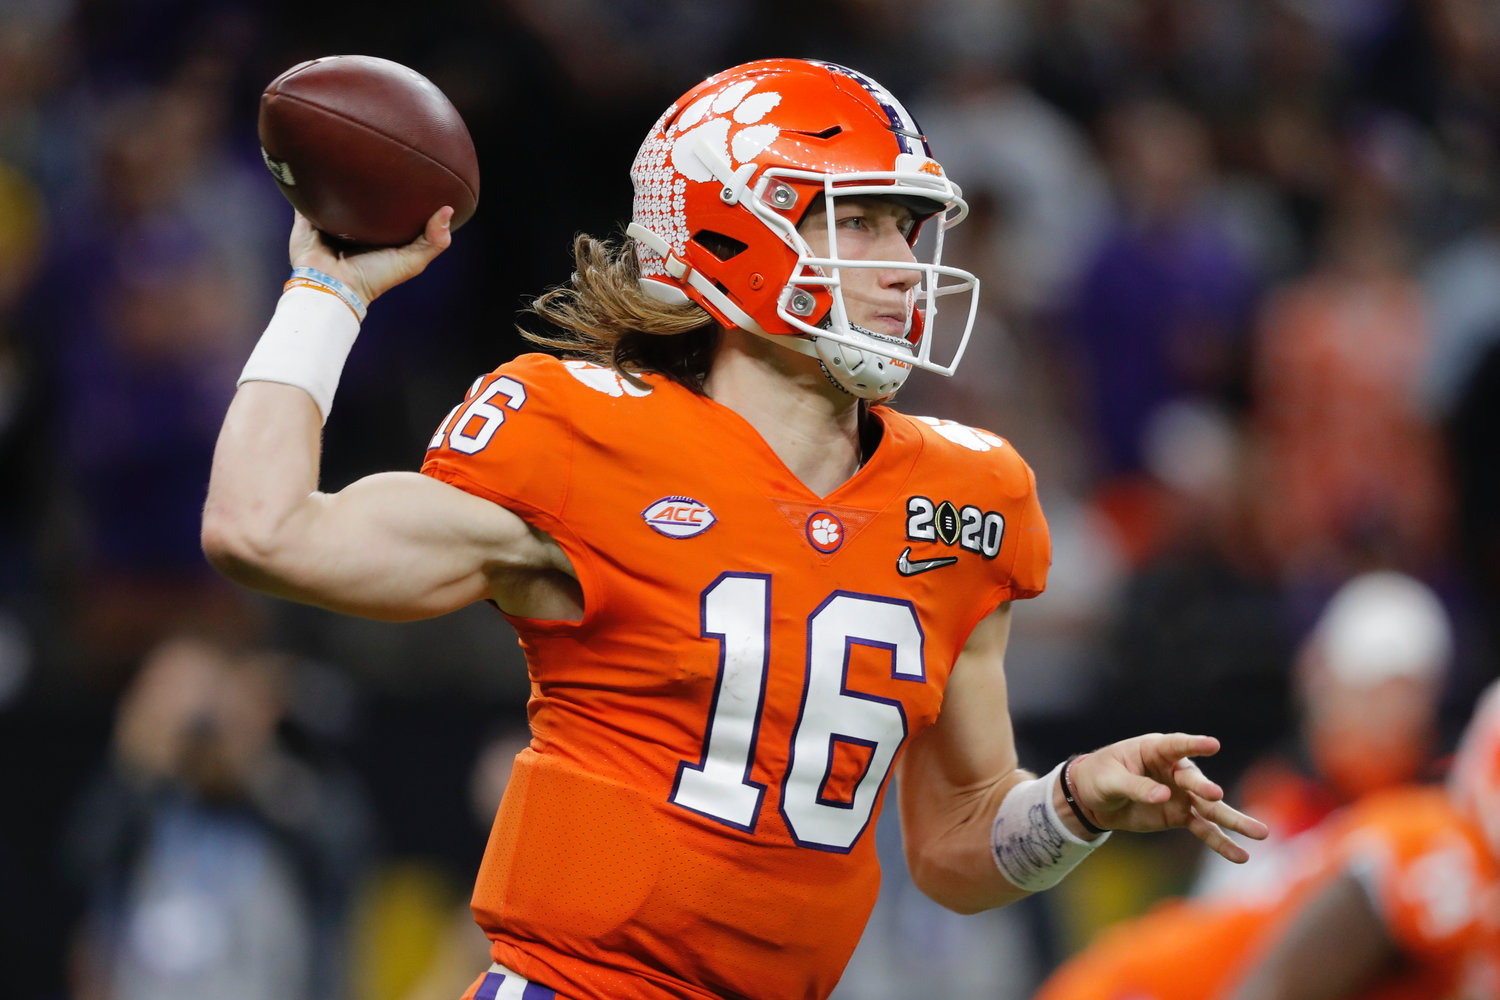 Clemson quarterback and Cartersville graduate Trevor Lawrence passes against LSU during the national championship game on Jan. 13 in New Orleans.